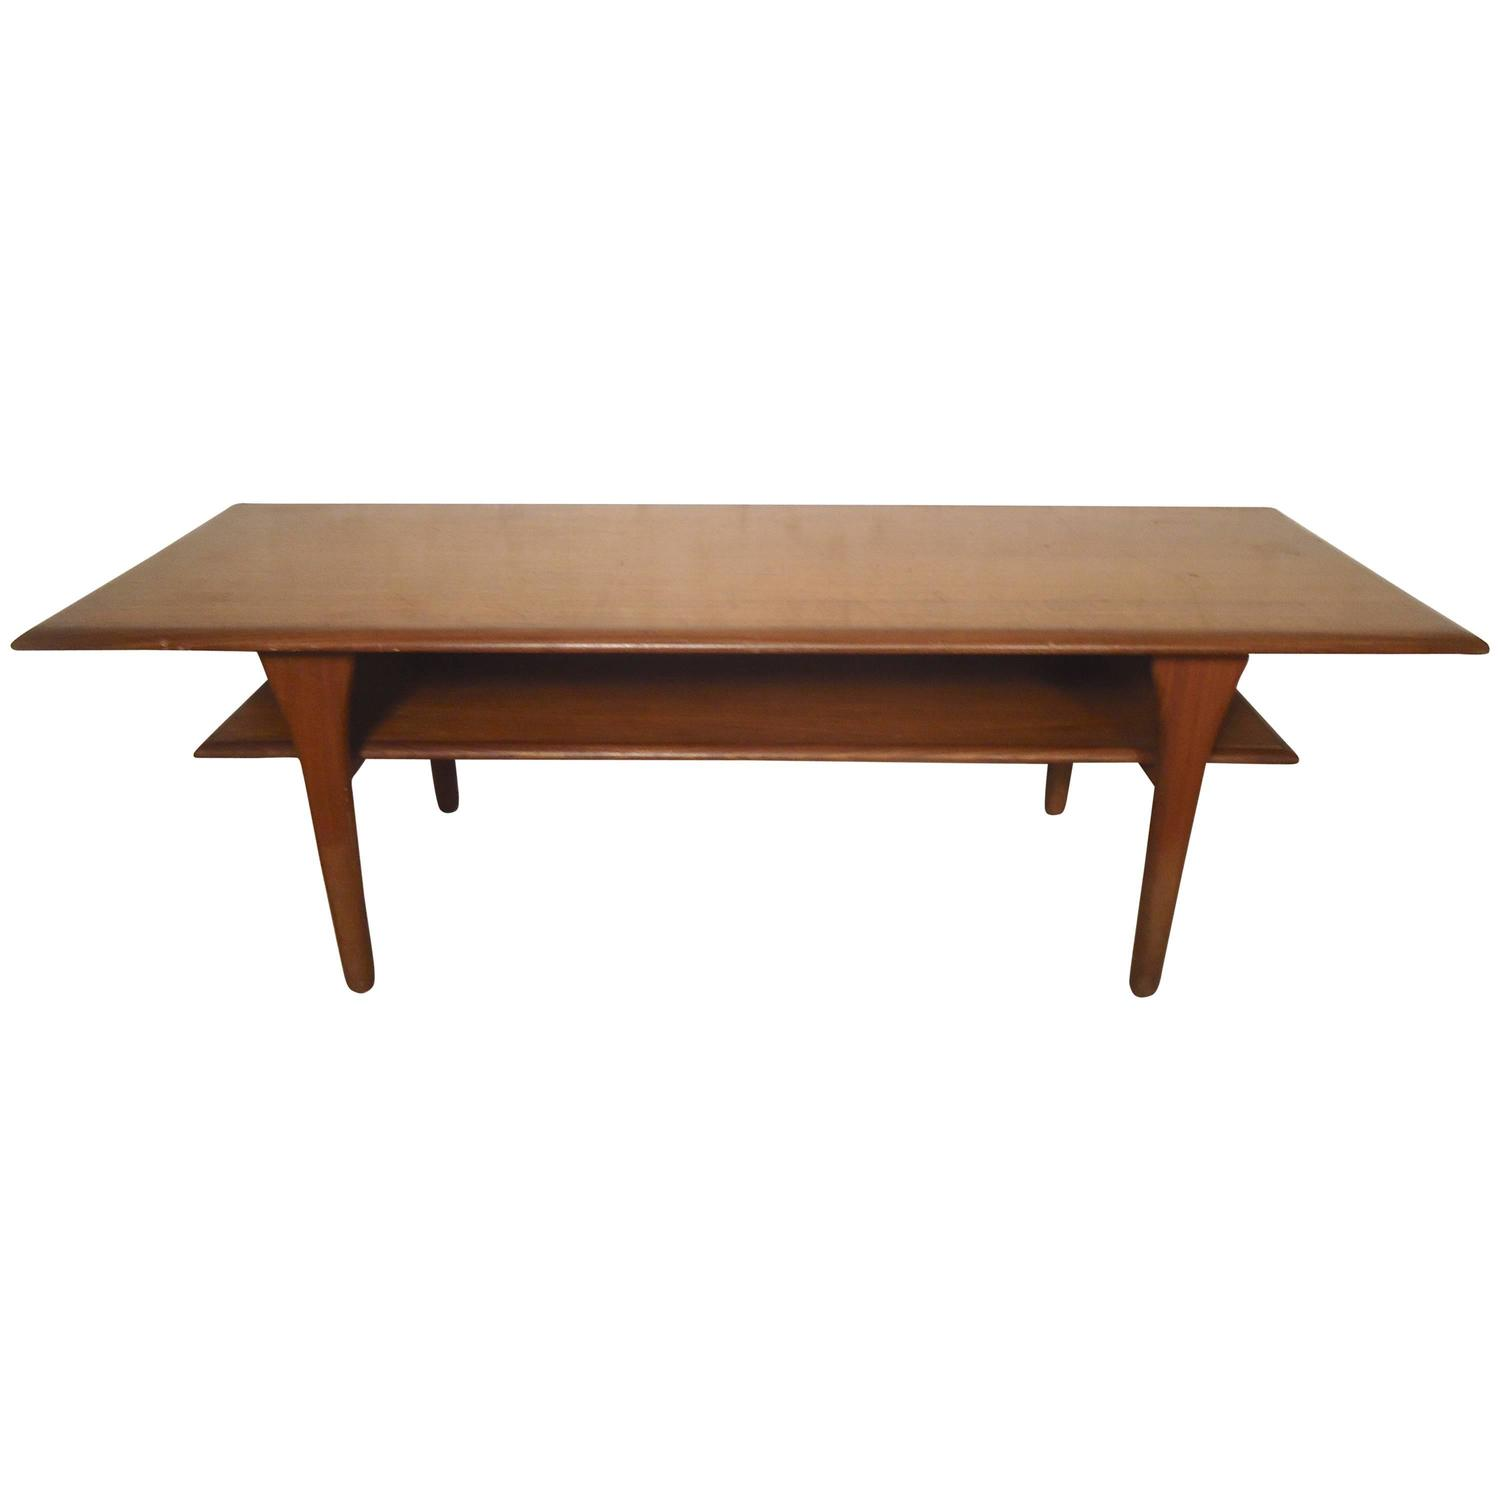 Danish modern coffee table for sale at 1stdibs for Modern coffee table sale